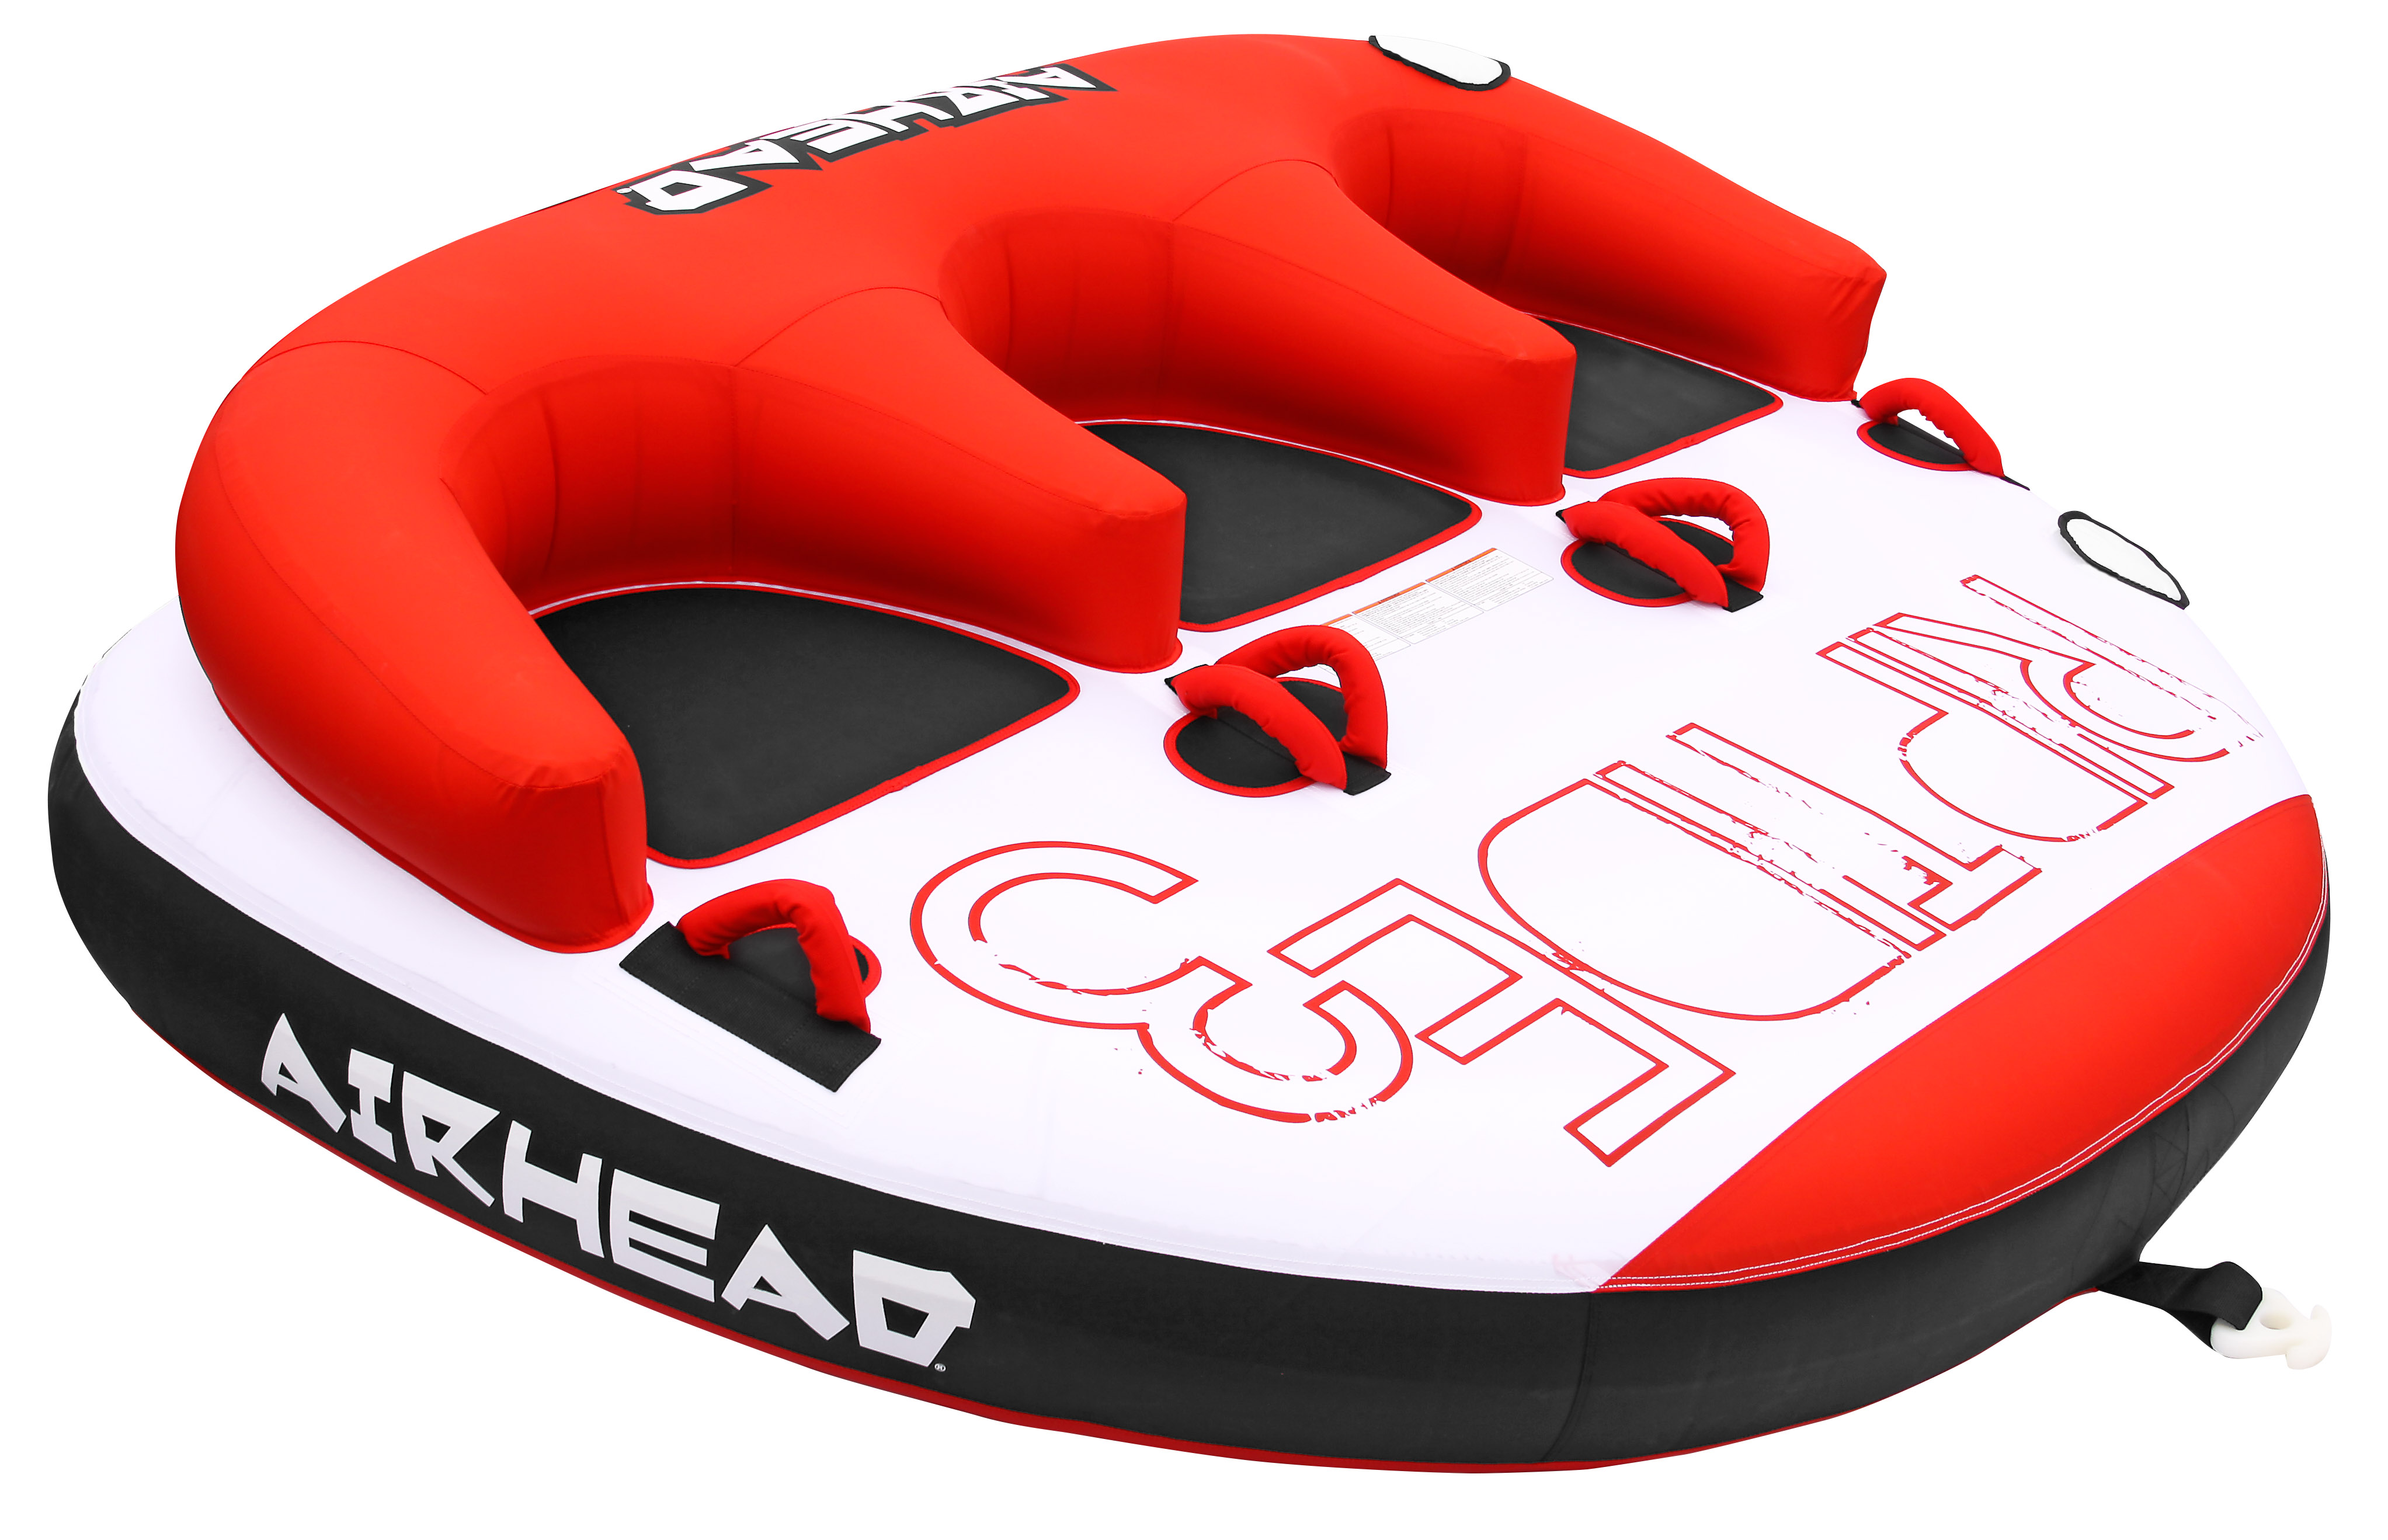 RIPTIDE 3 Towable Tube by AIRHEAD SPORTS GROUP